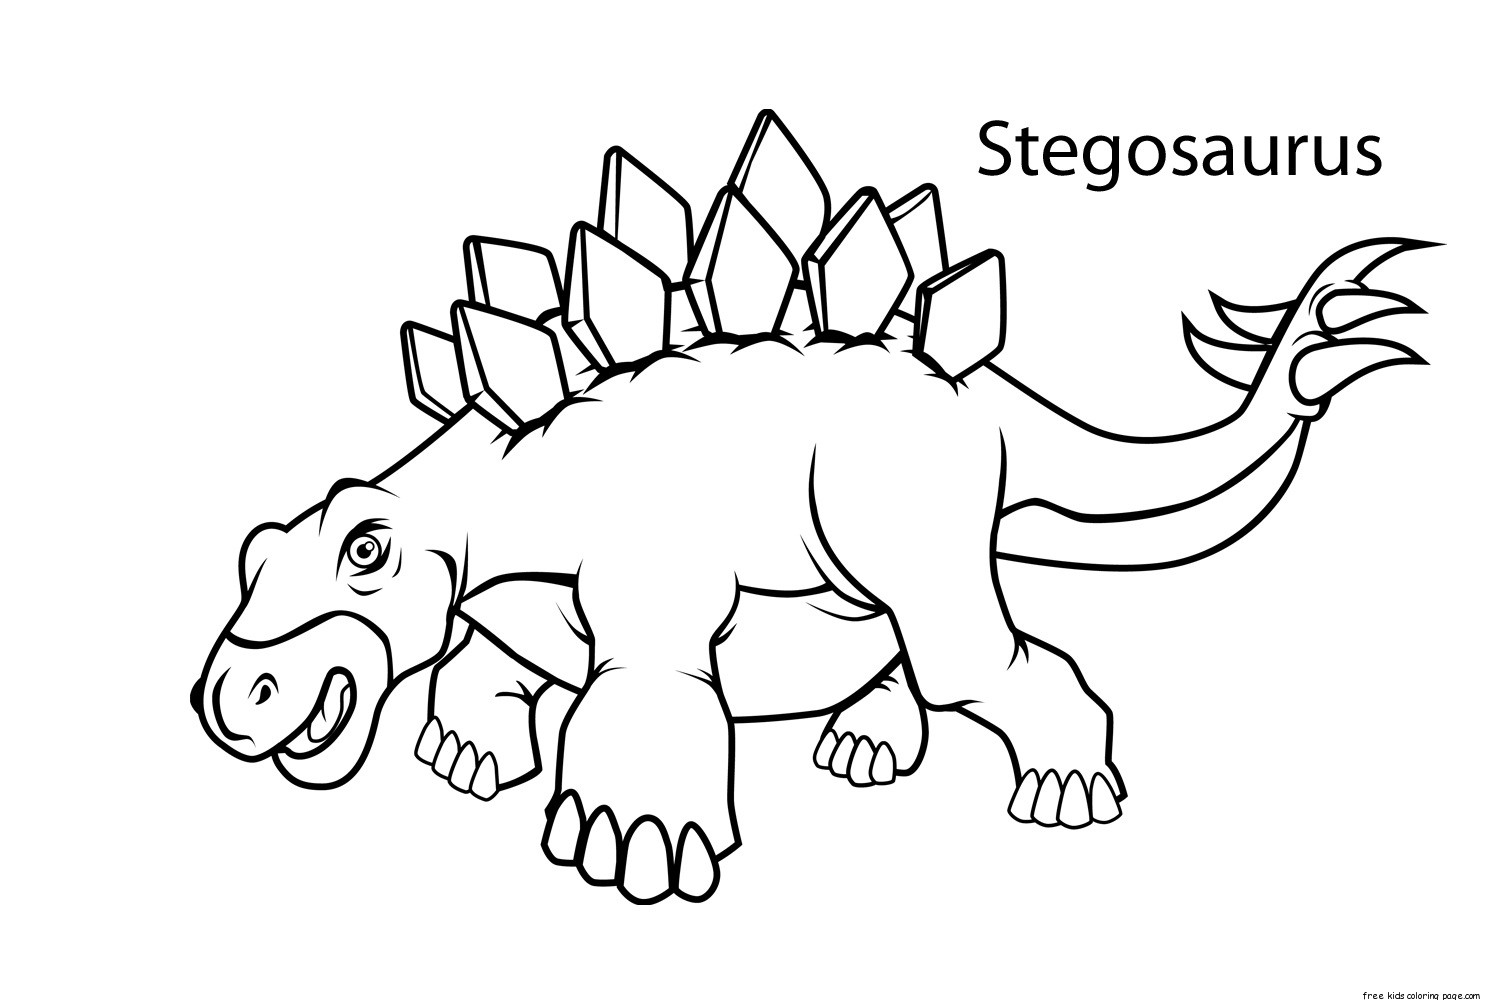 dinosaur pictures to print for free printable dinosaur coloring pages for kids cool2bkids for print pictures free dinosaur to